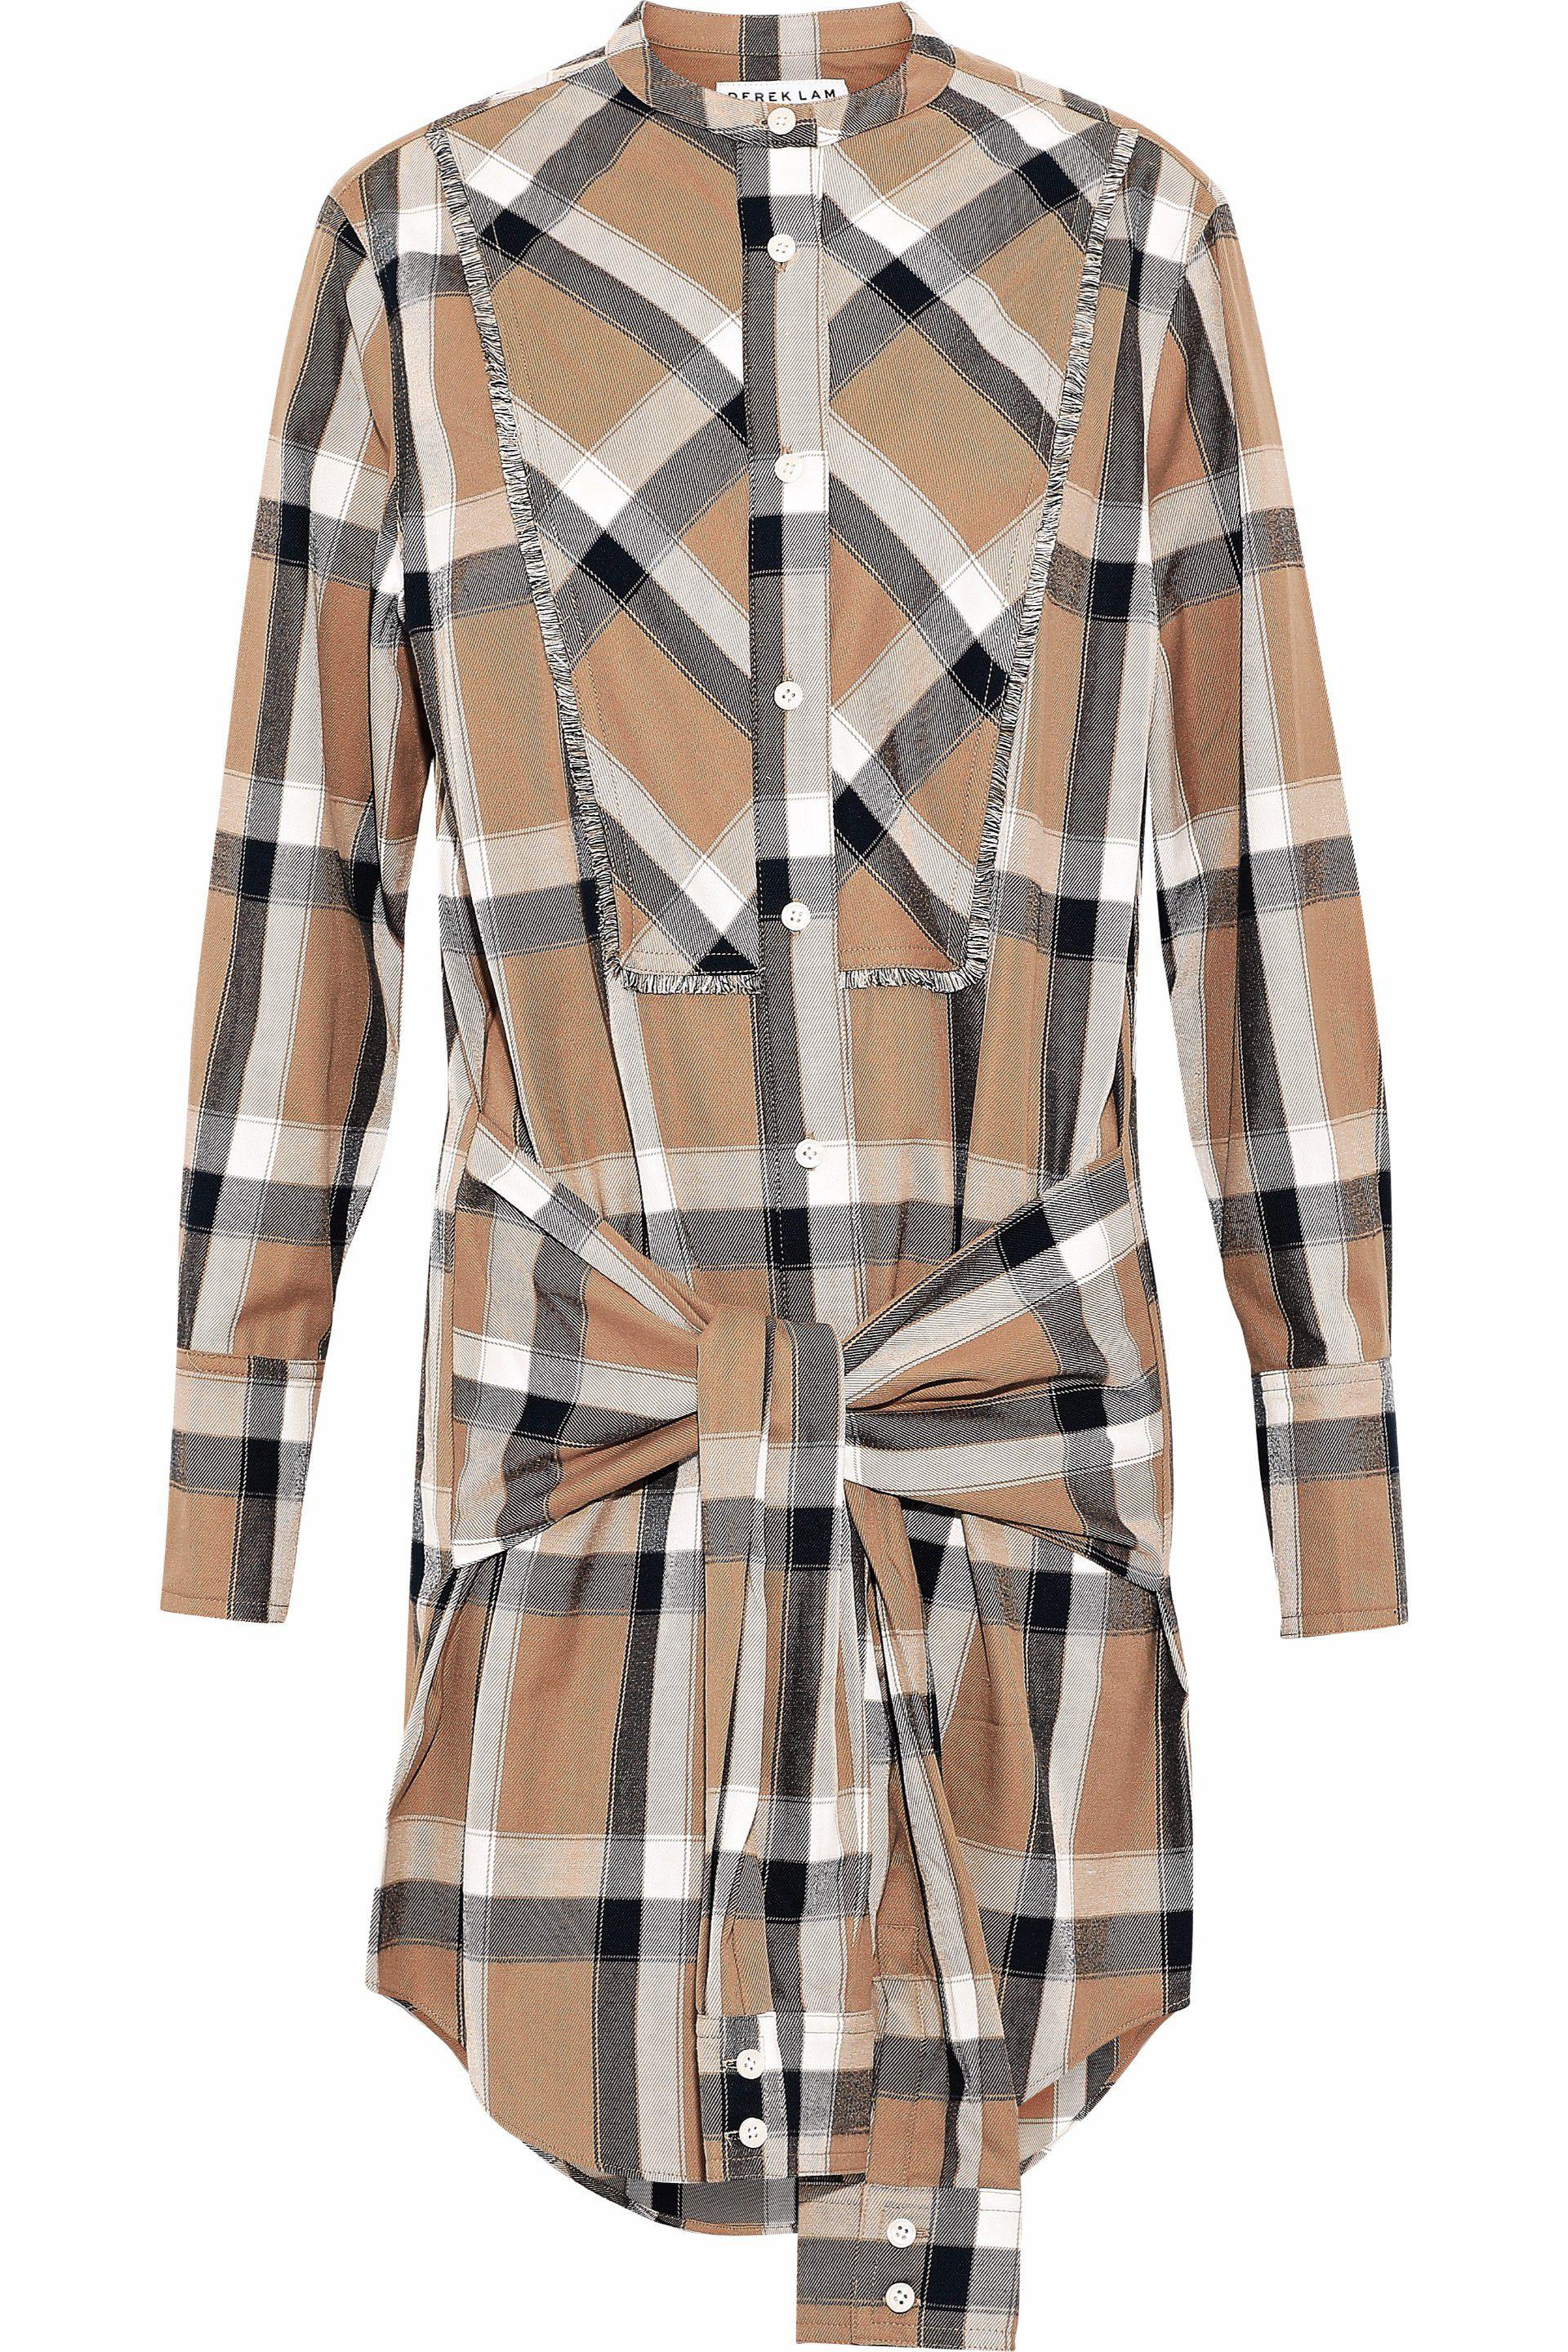 Buy Cheap Visa Payment For Nice Cheap Online Derek Lam 10 Crosby Woman Gathered Checked Flannel Shirt Dress Black Size 00 Derek Lam WLZaX7